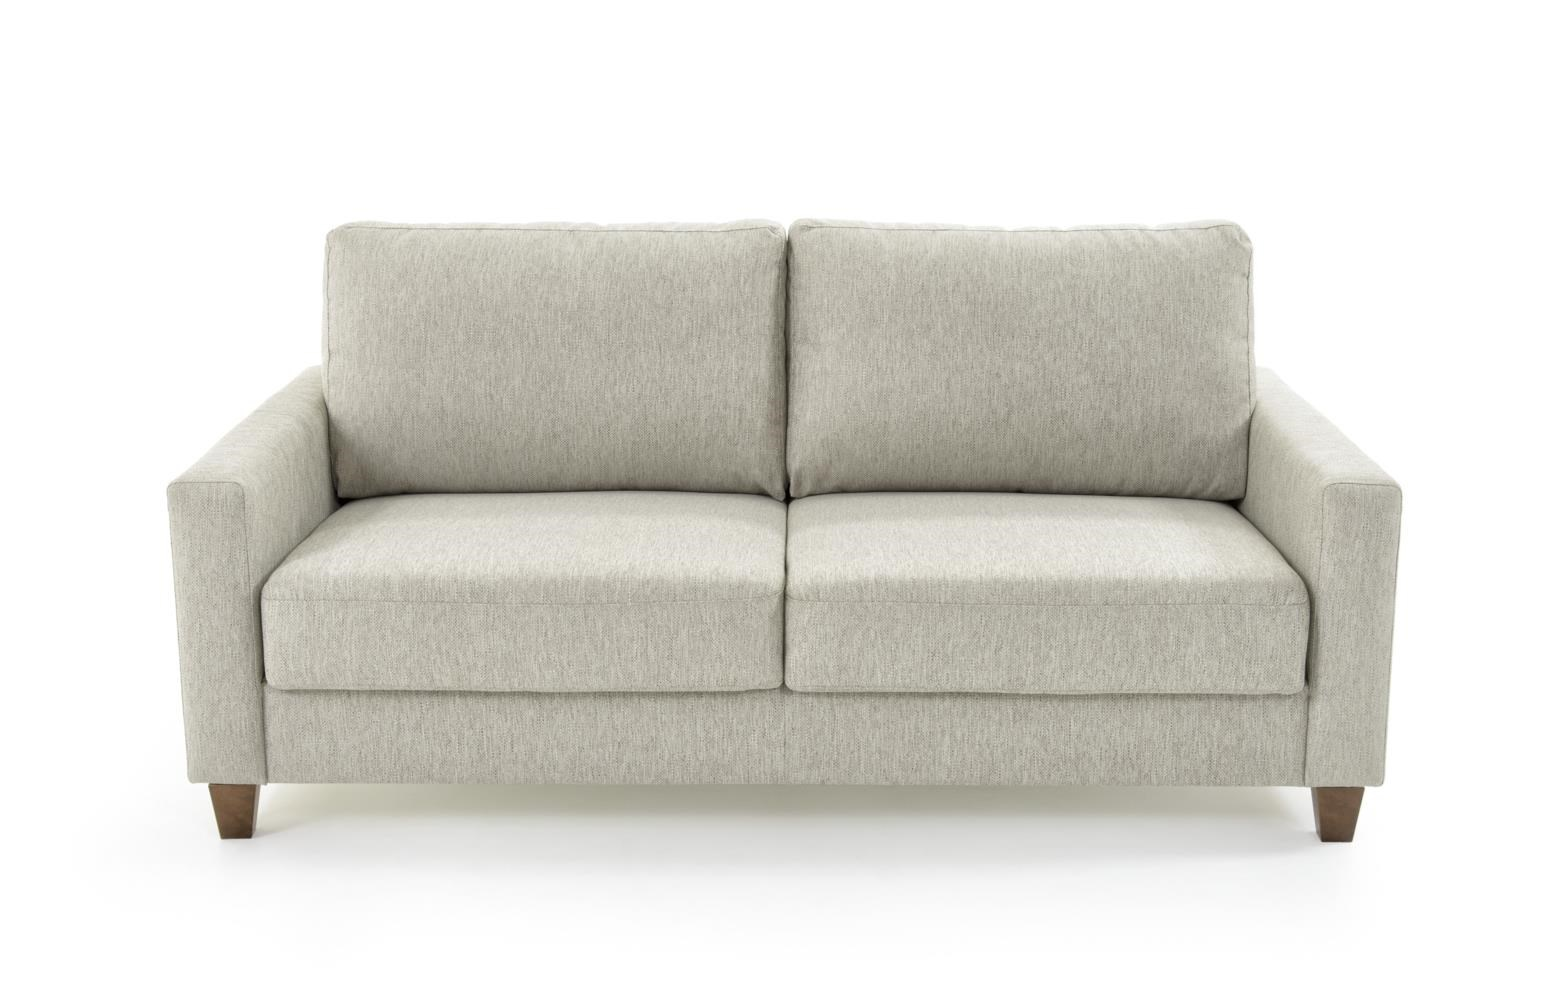 Nico Contemporary Queen Size Sleeper Sofa by Luonto at Baer\'s Furniture